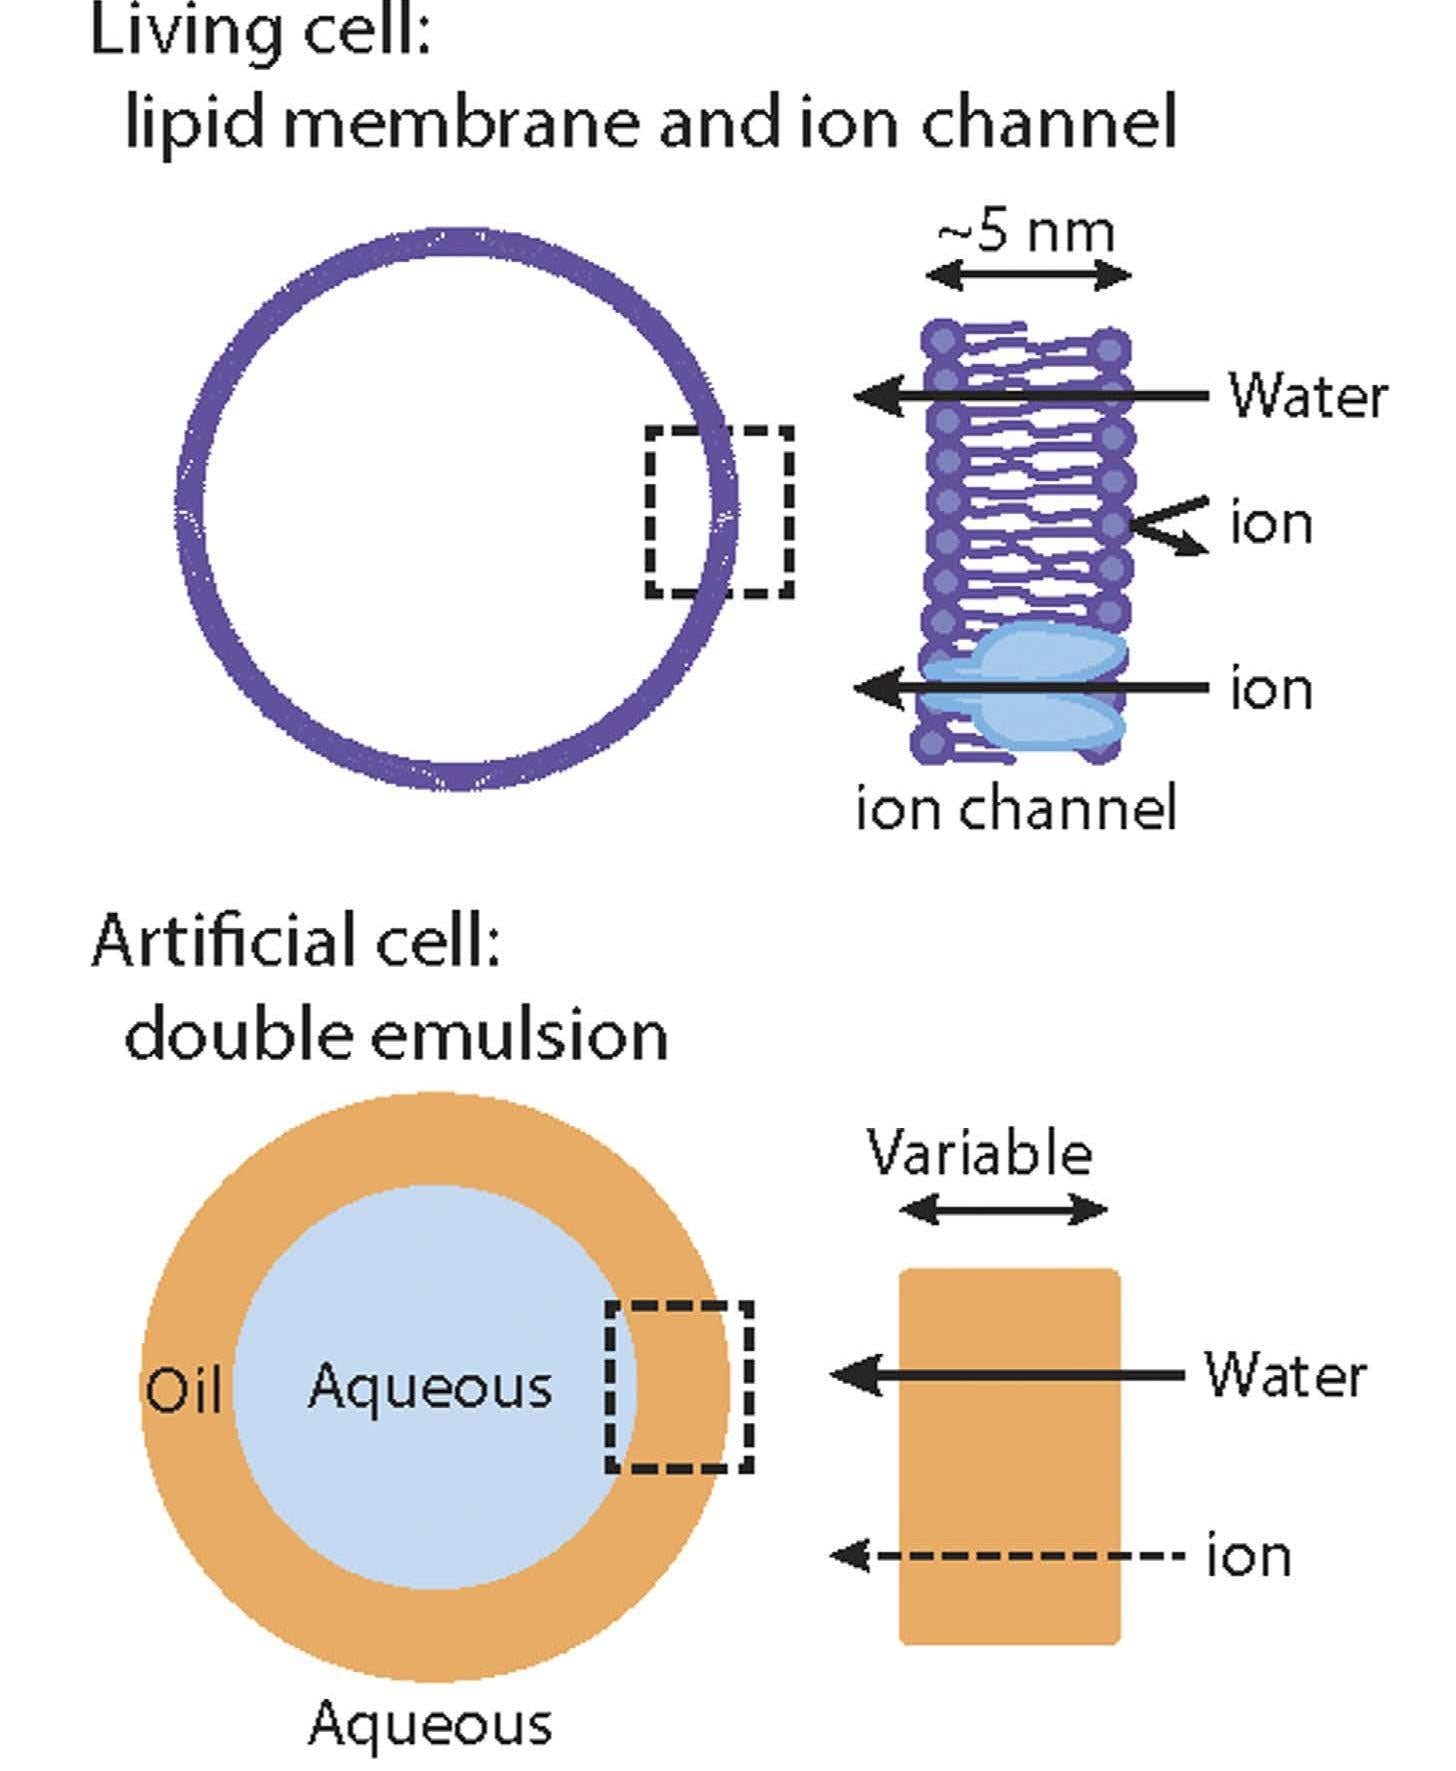 Scheme of an artificial cell generated by a double emulsion compared to a real living cell